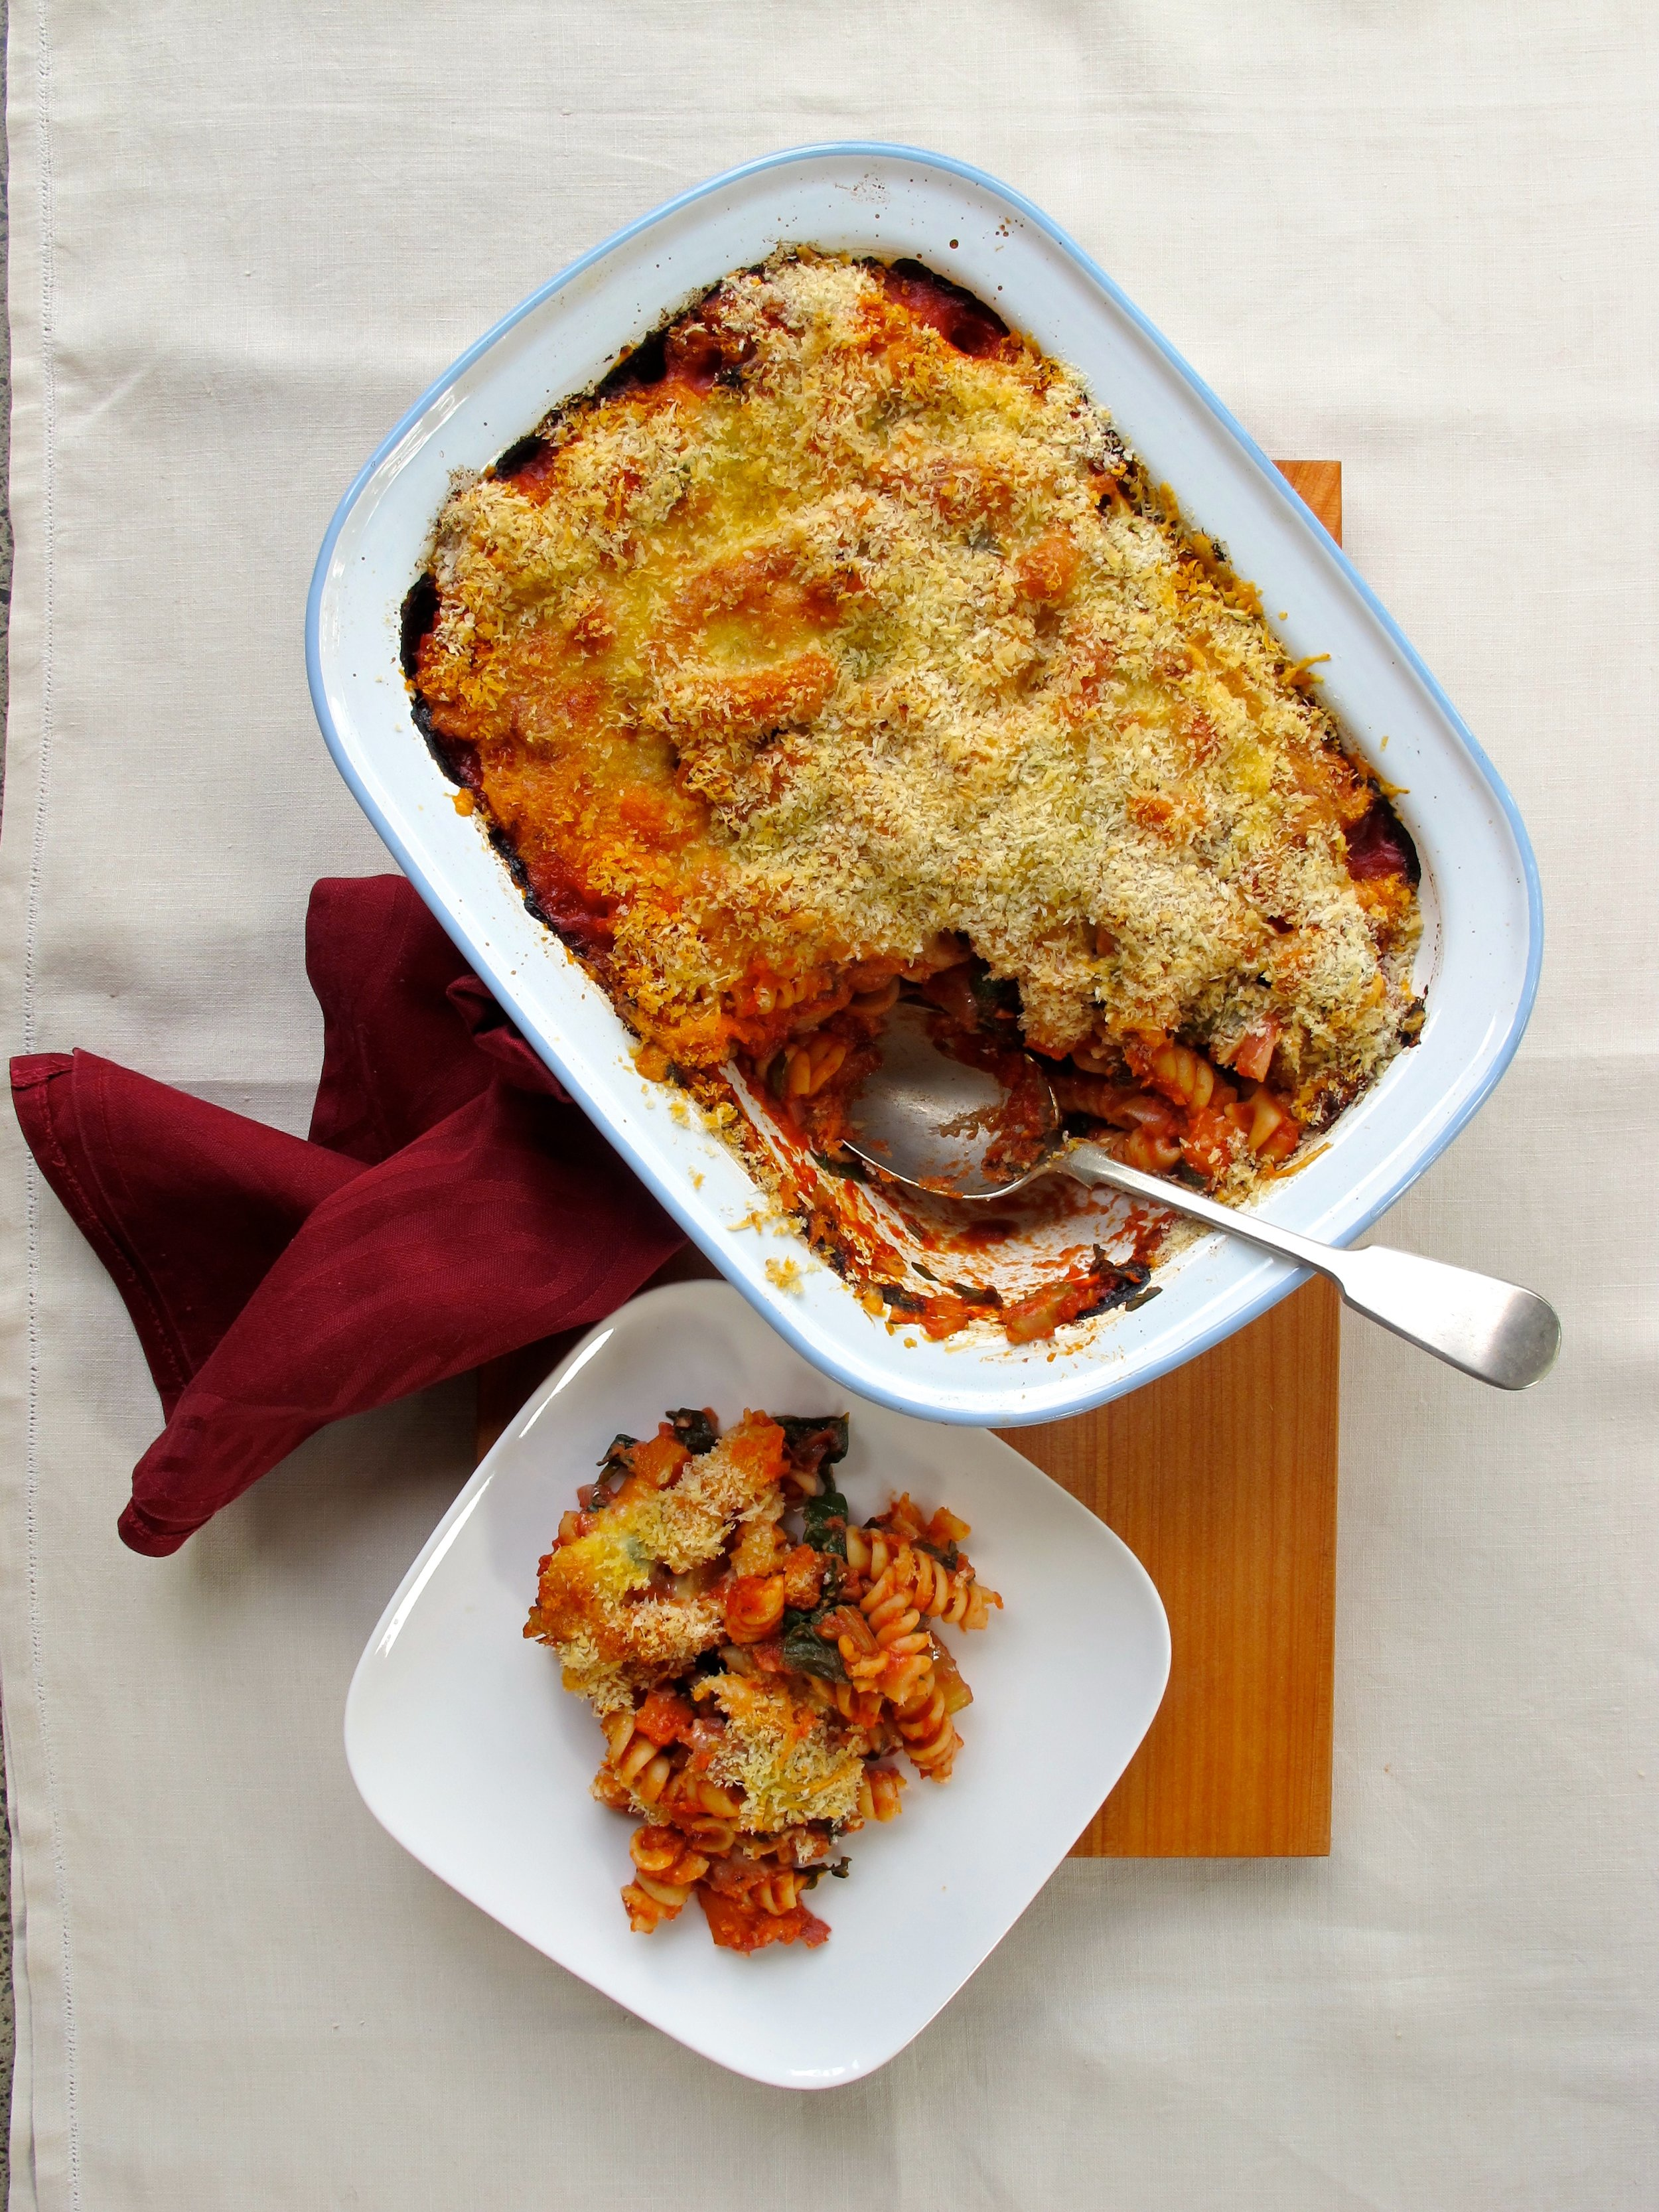 25.-Baked-Pasta-with-Sausages-.jpg